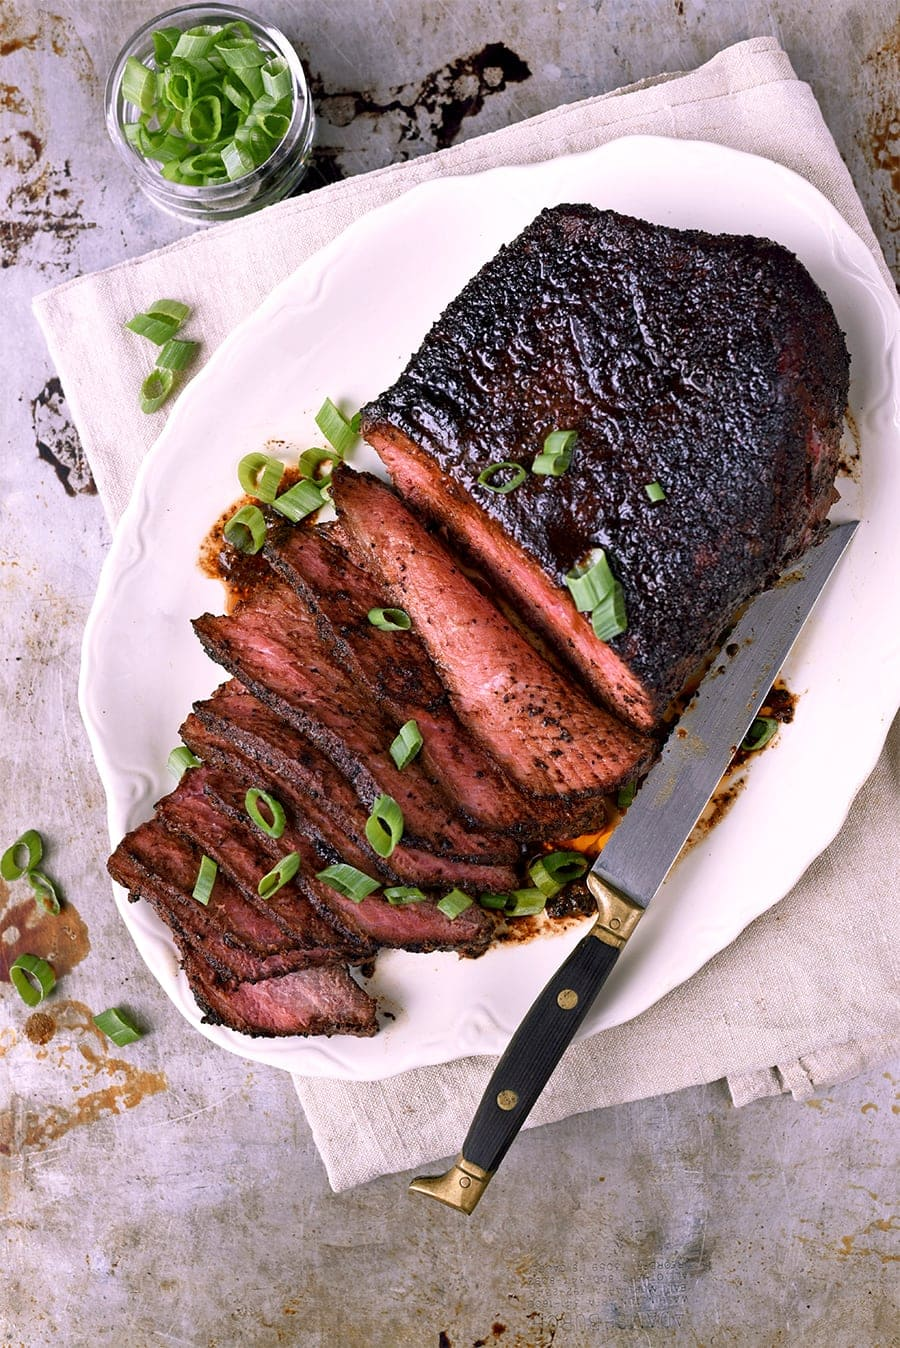 No marinating required! Cheap eats meets gourmet dry rub in this easy London broil recipe. It cooks in under 30 minutes and is stellar as a dinner main dish.